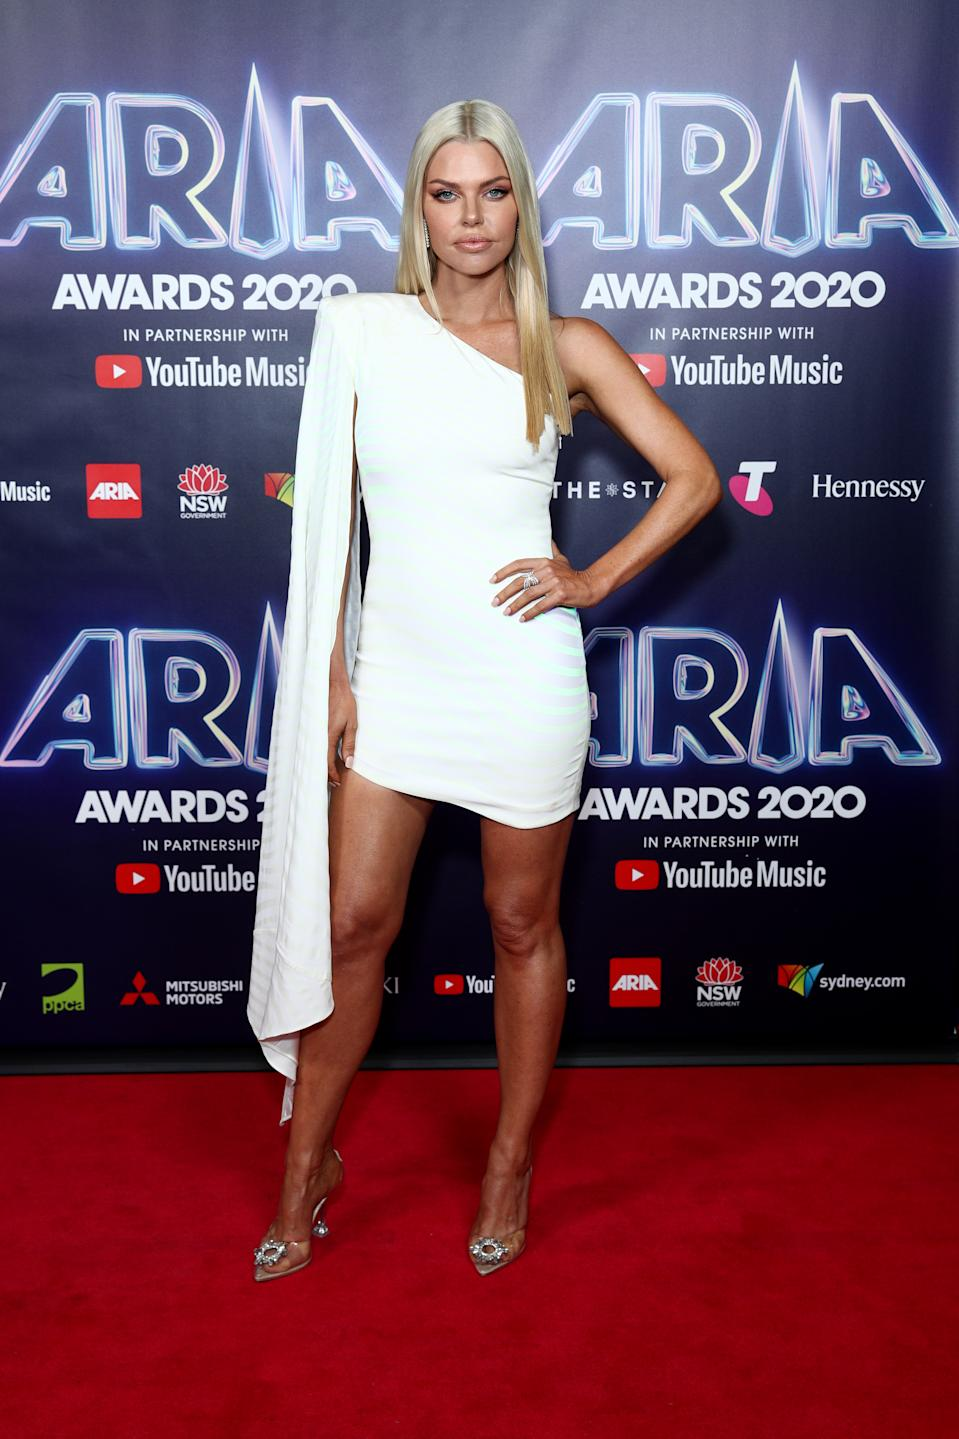 Sophie Monk wears a white one-shouldered mini dress on the red carpet at the 2020 ARIA Awards at The Star on November 25, 2020 in Sydney, Australia.